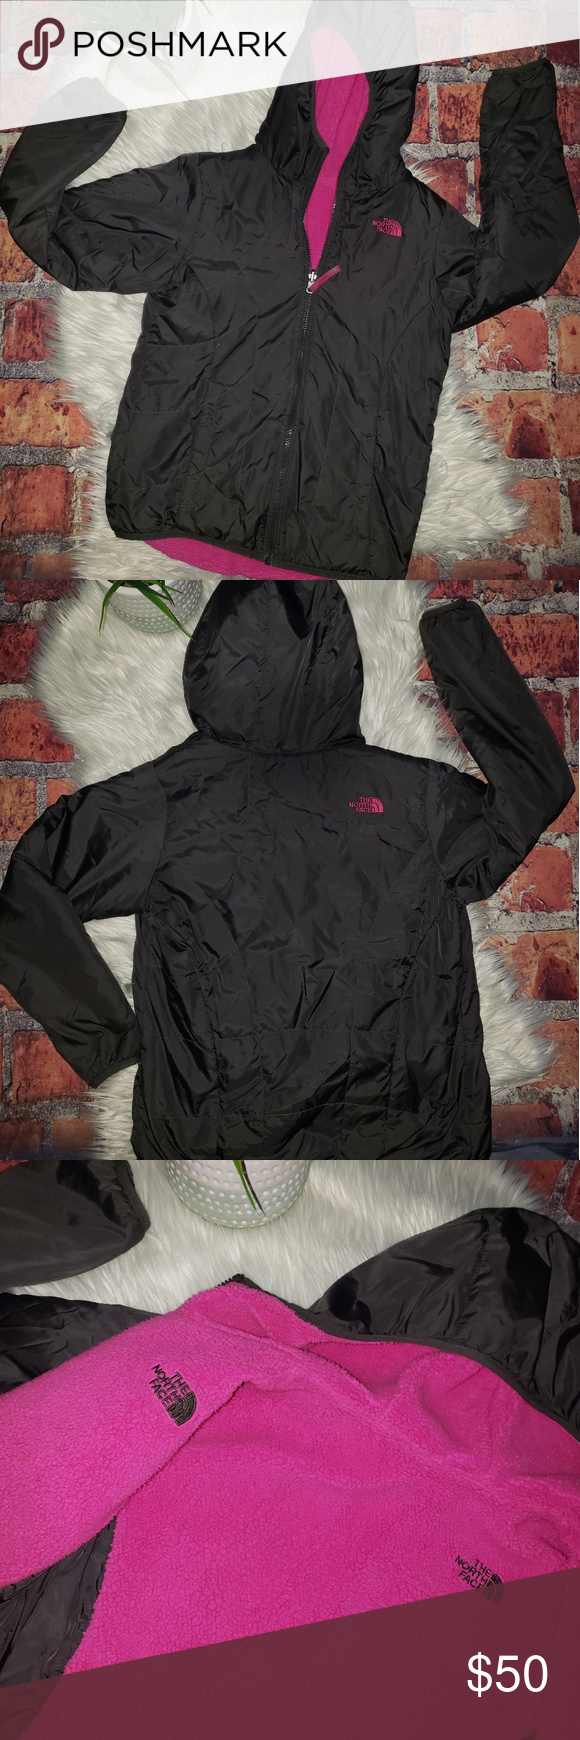 Girls North Face Reversible Perrito Jacket Girls North Face Perrito Reversible Jacket Size Youth Xl Grey And Pink Euc North Face Girls Fashion Clothes Design [ 1740 x 580 Pixel ]